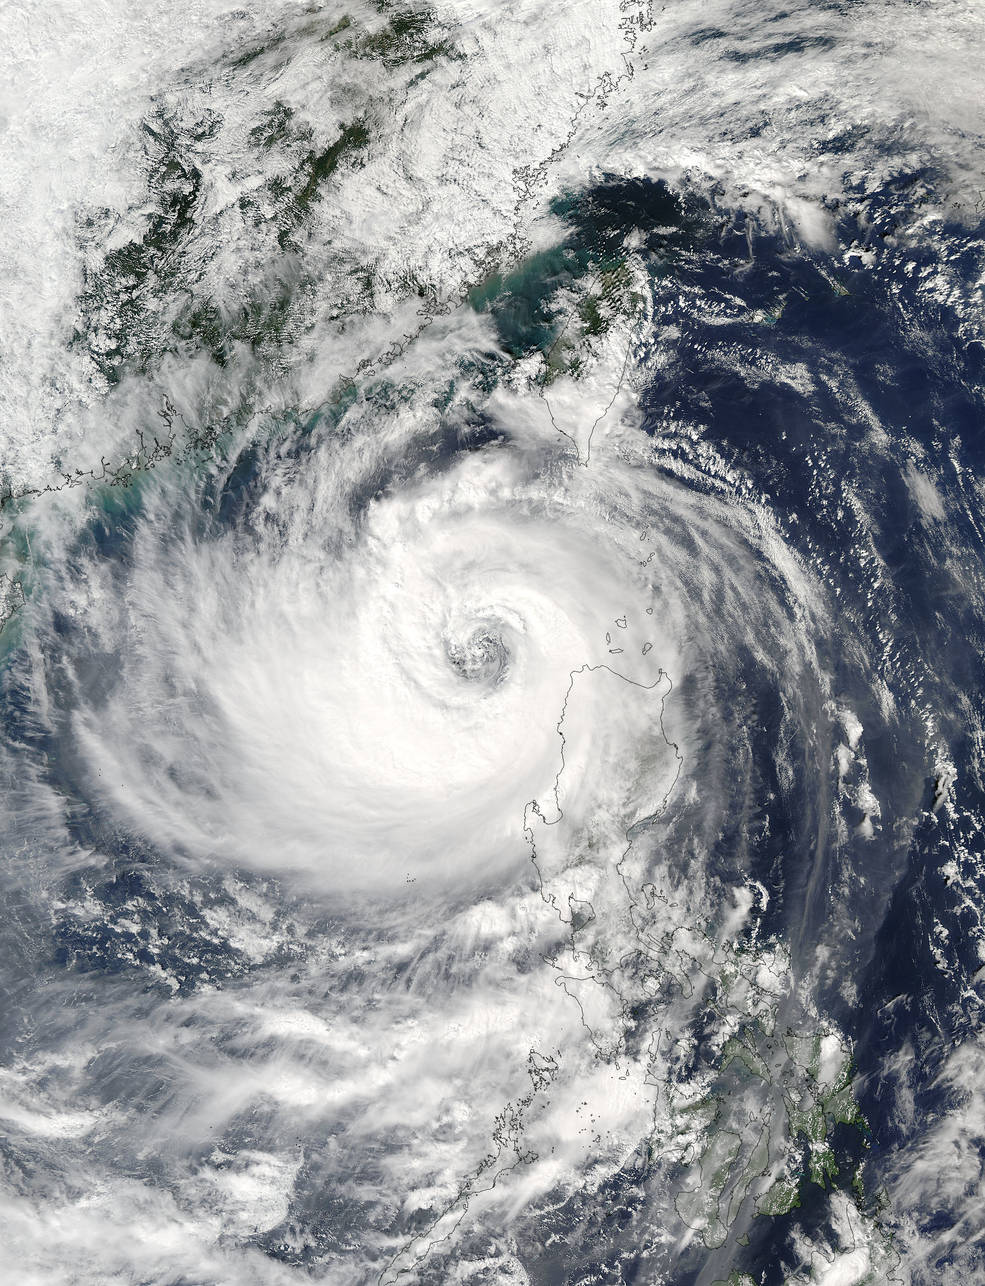 satellite view of tropical storm over ocean